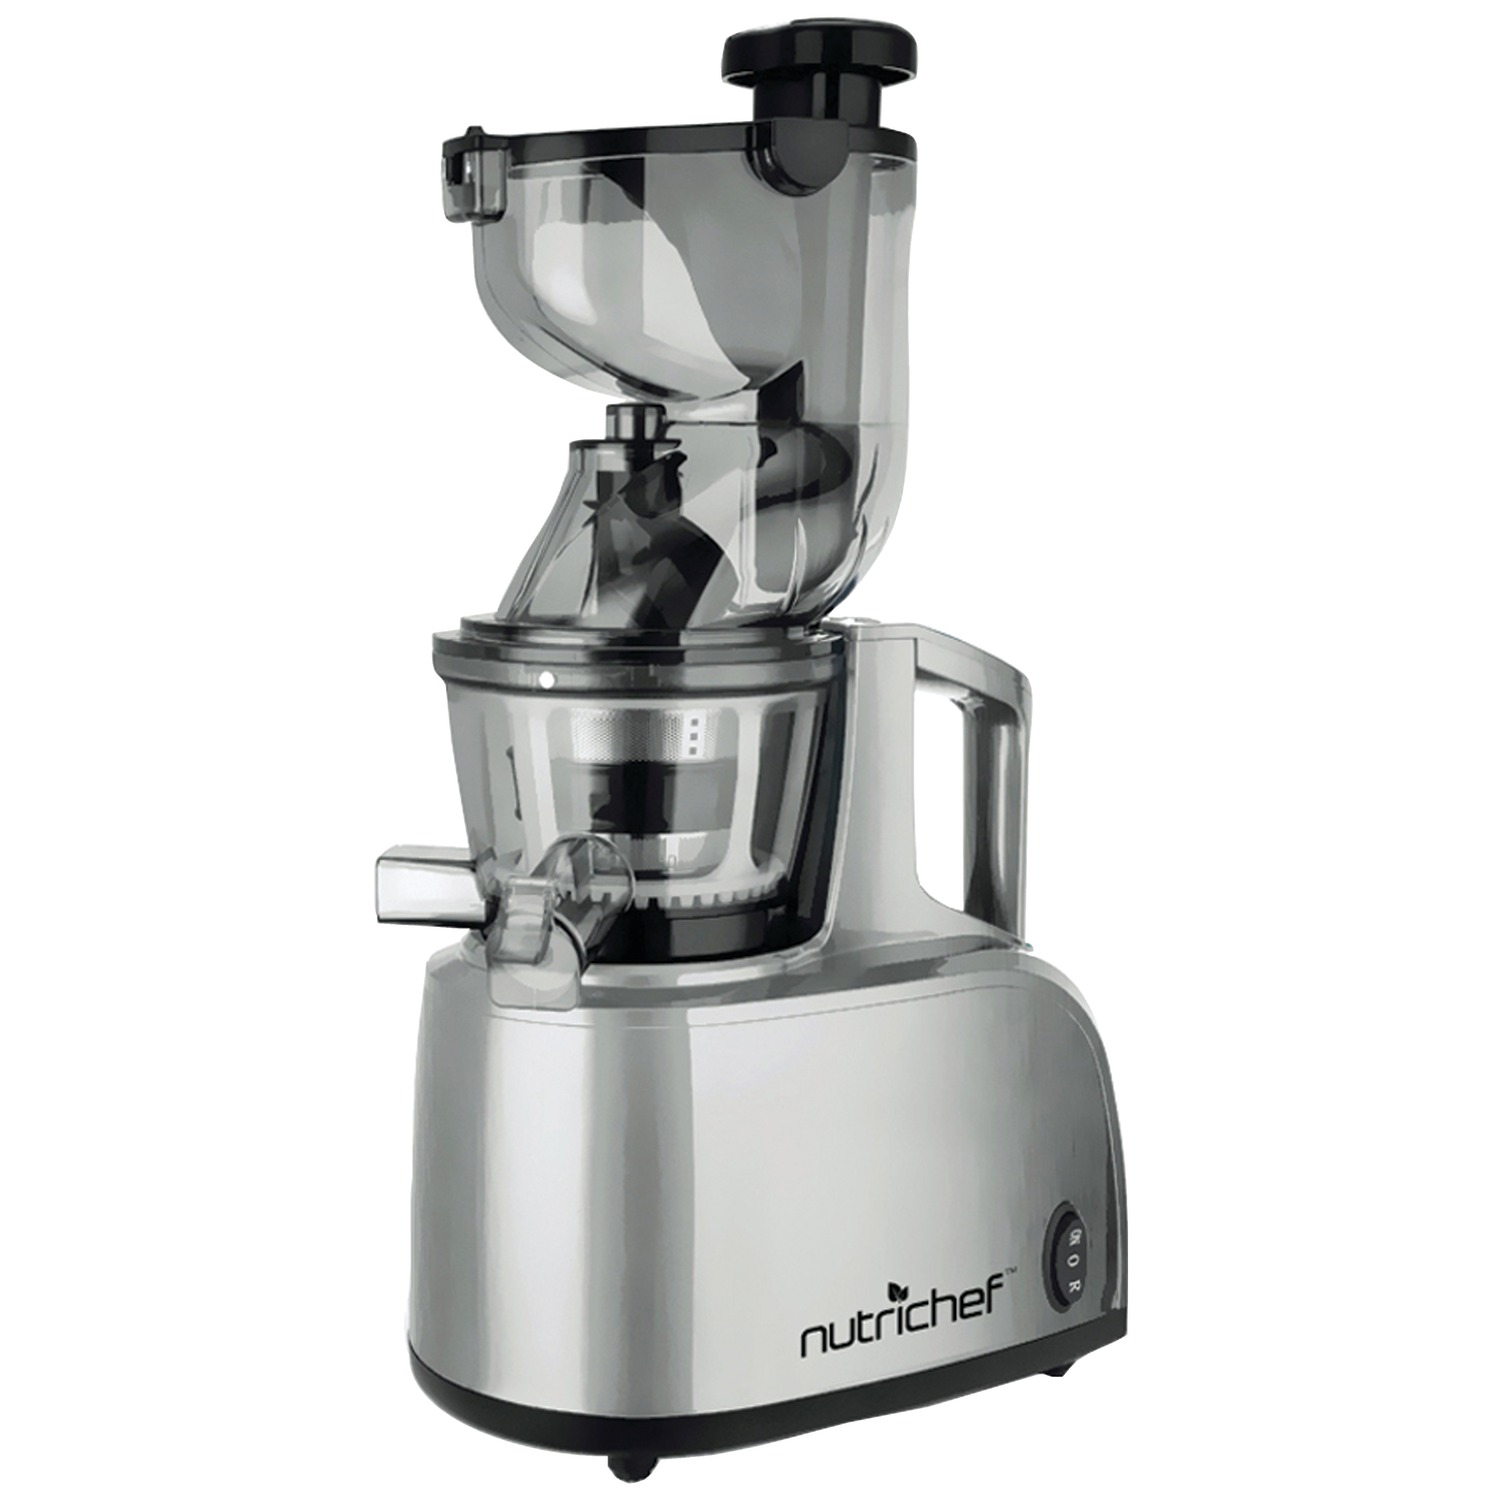 Kalorik Masticating Juicer Review : NUTRICHEF PKSJ40 Countertop Masticating Slow Juicer & Drink Maker